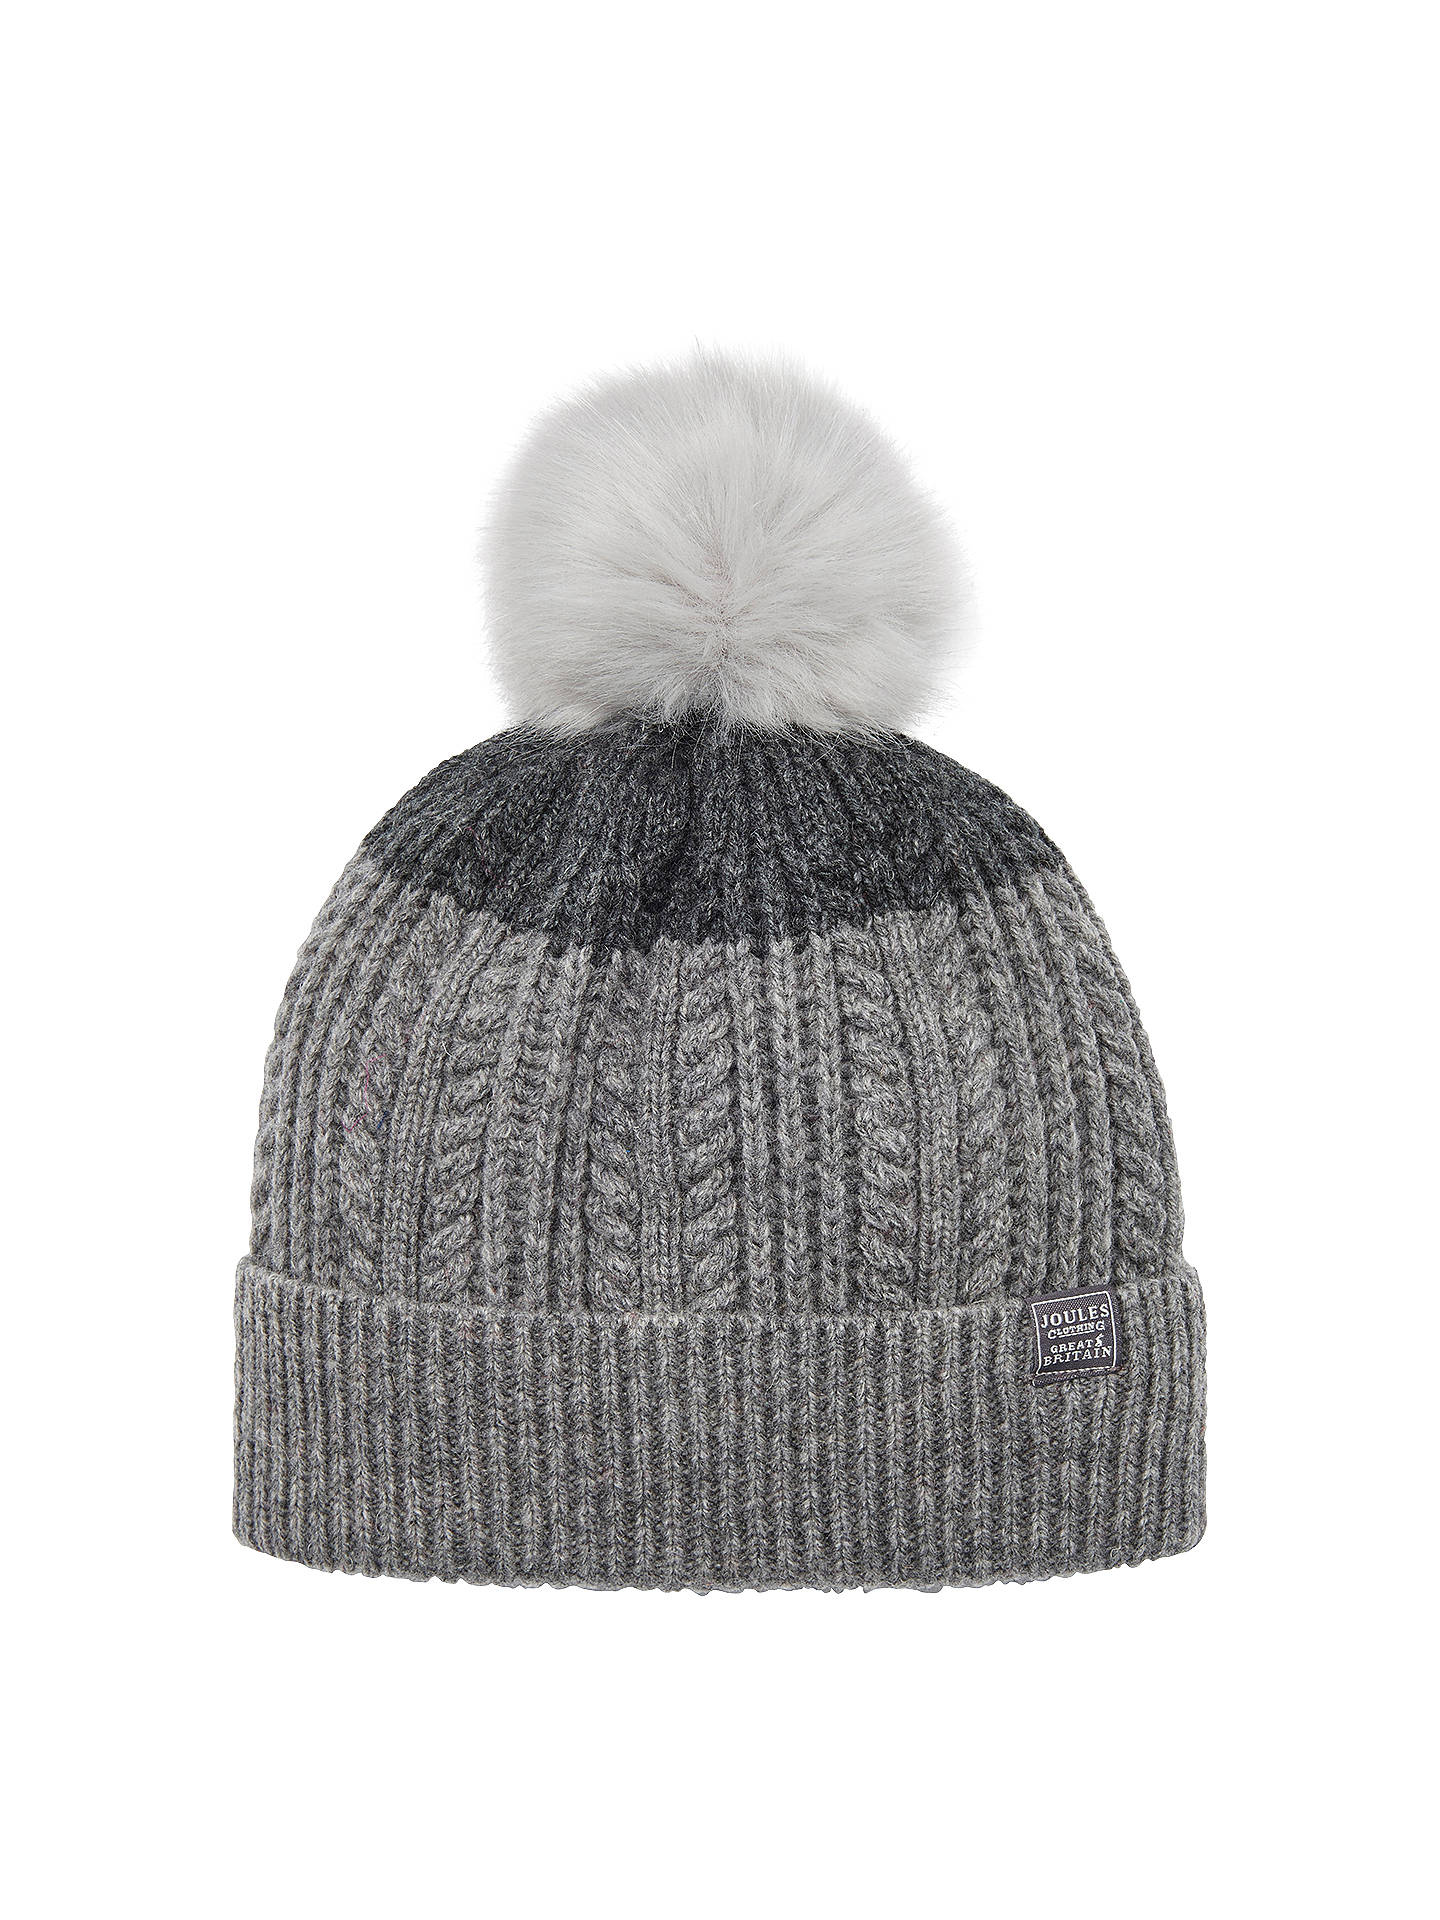 5a4a1e4156b Joules Two Tone Lambswool Rich Bobble Hat at John Lewis   Partners